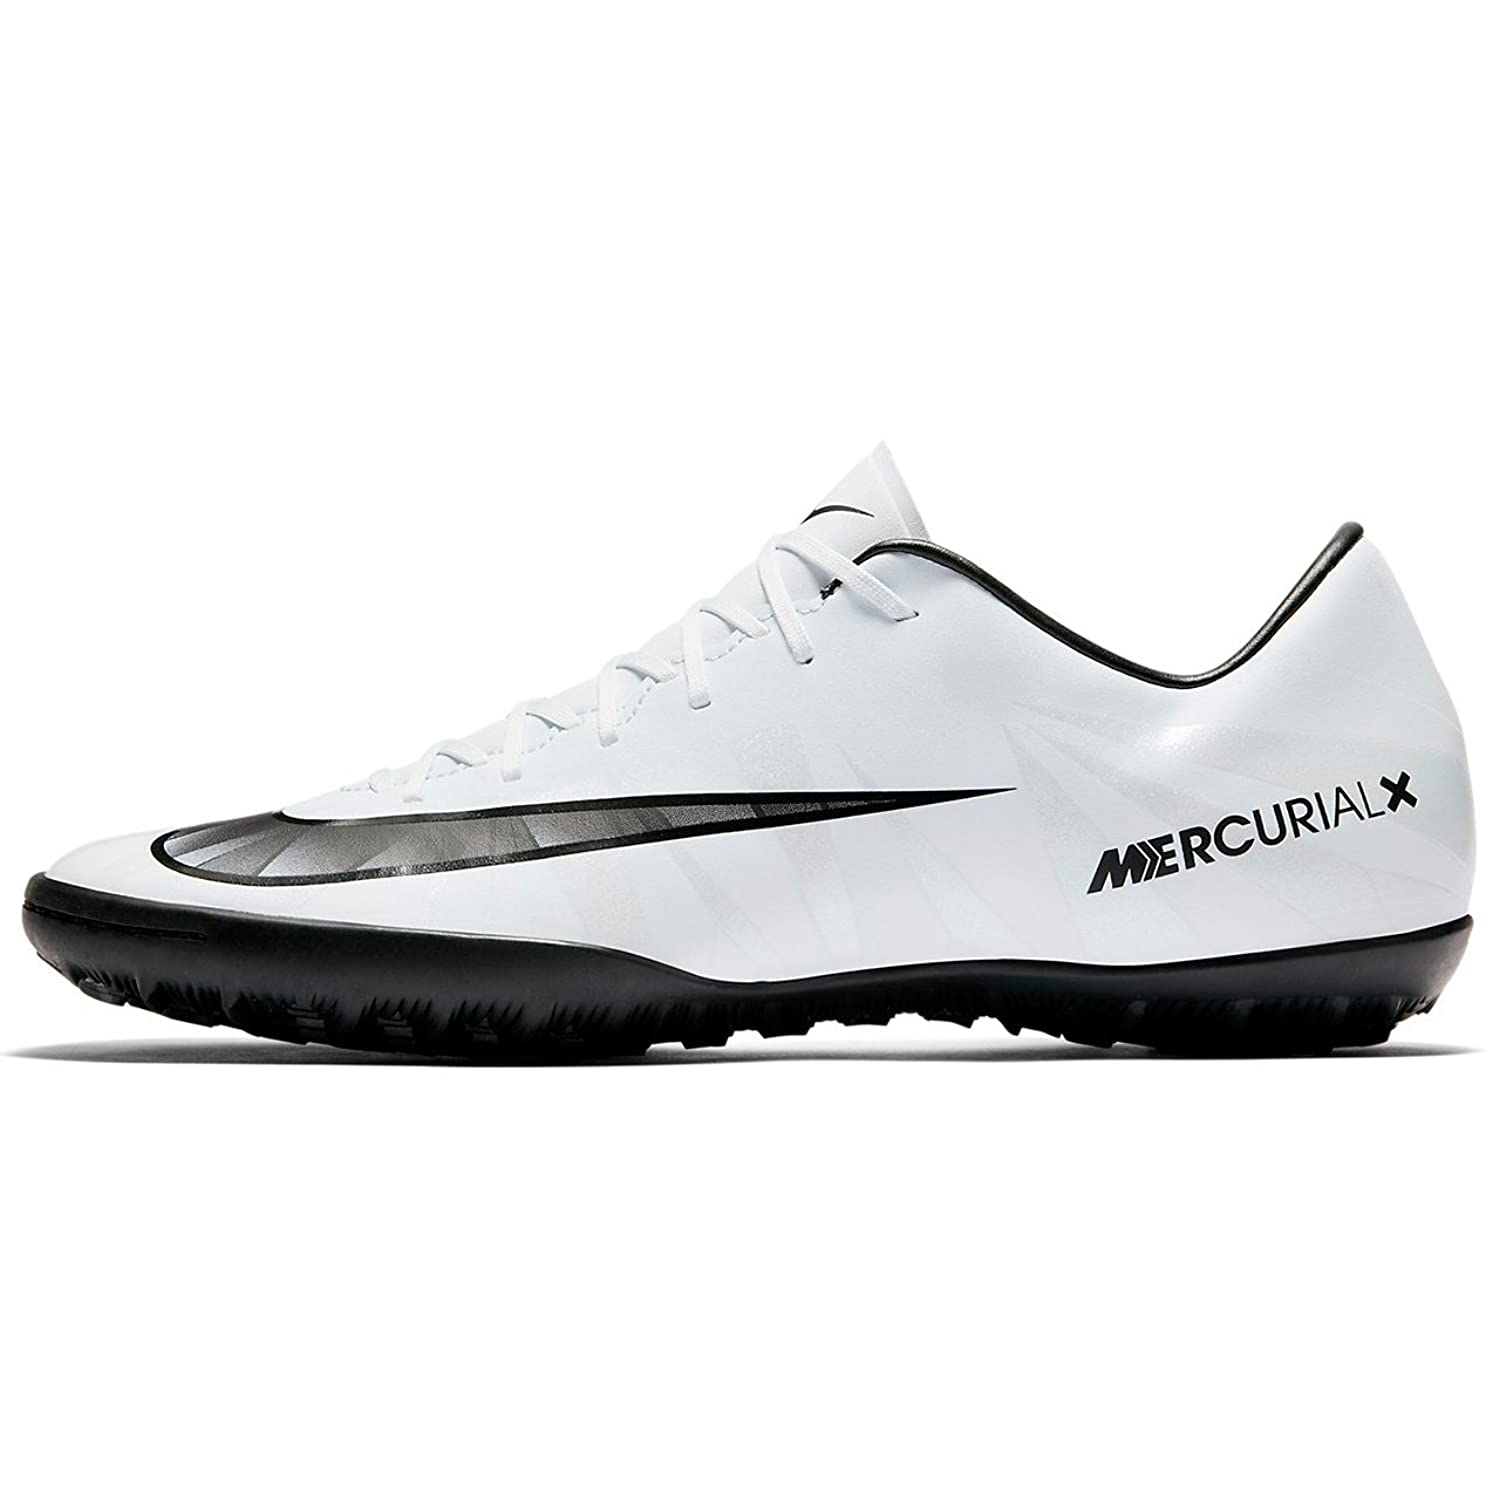 MercurialX Victory VI CR7 TF Men\u0027s Soccer Turf Shoe � NIKE